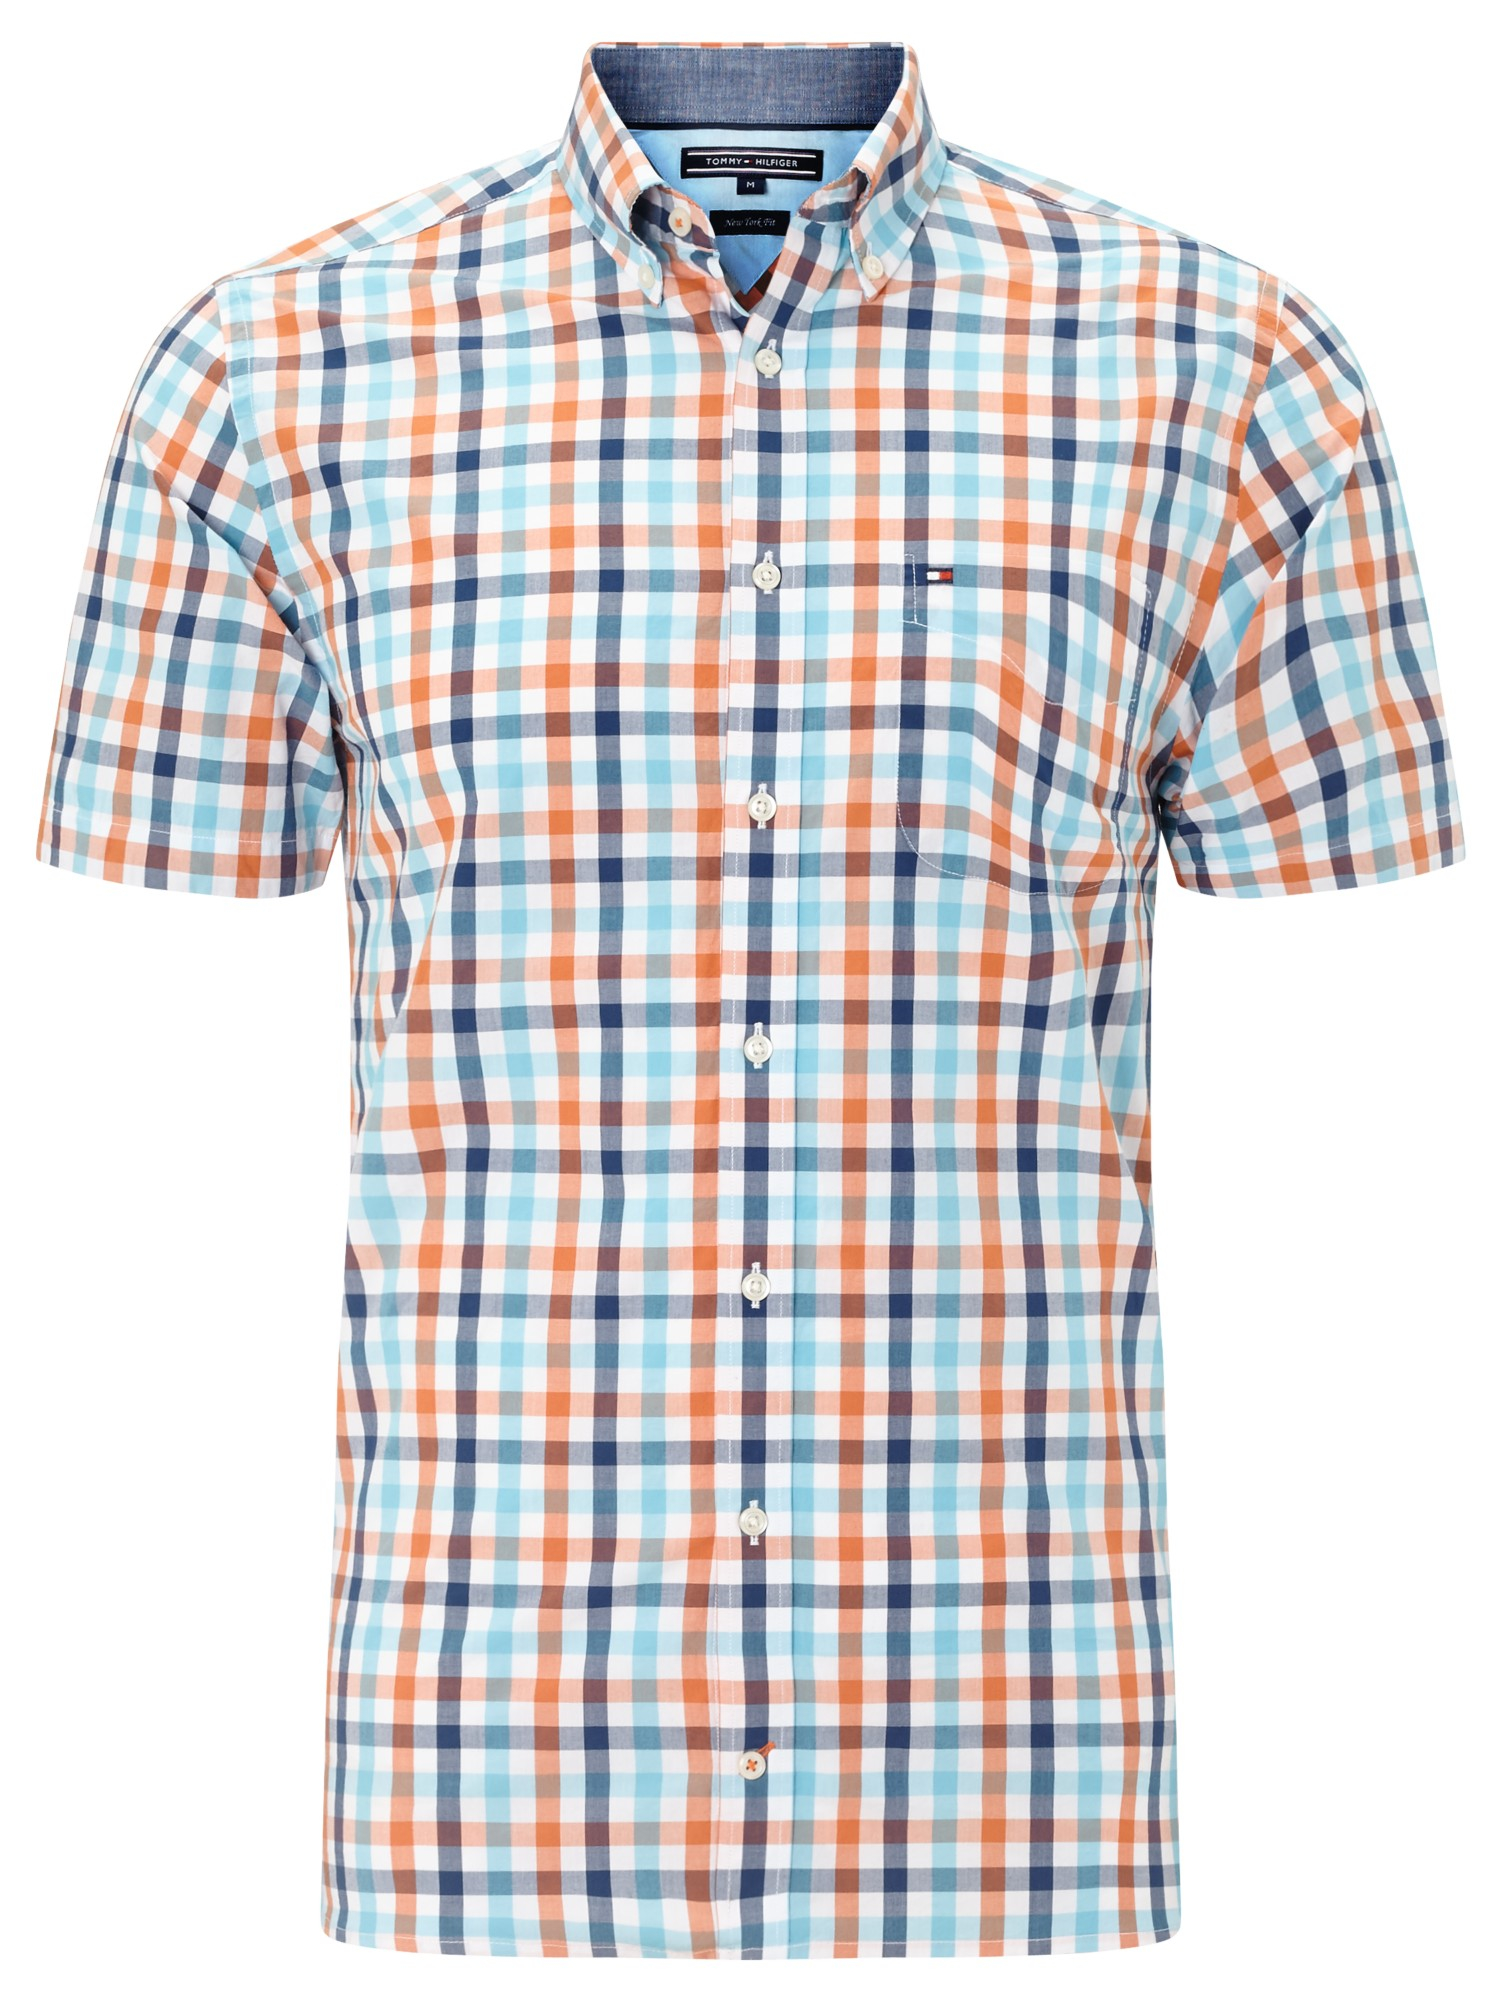 5af238aa Tommy Hilfiger Eddy Short Sleeve Check Shirt in Blue for Men - Lyst